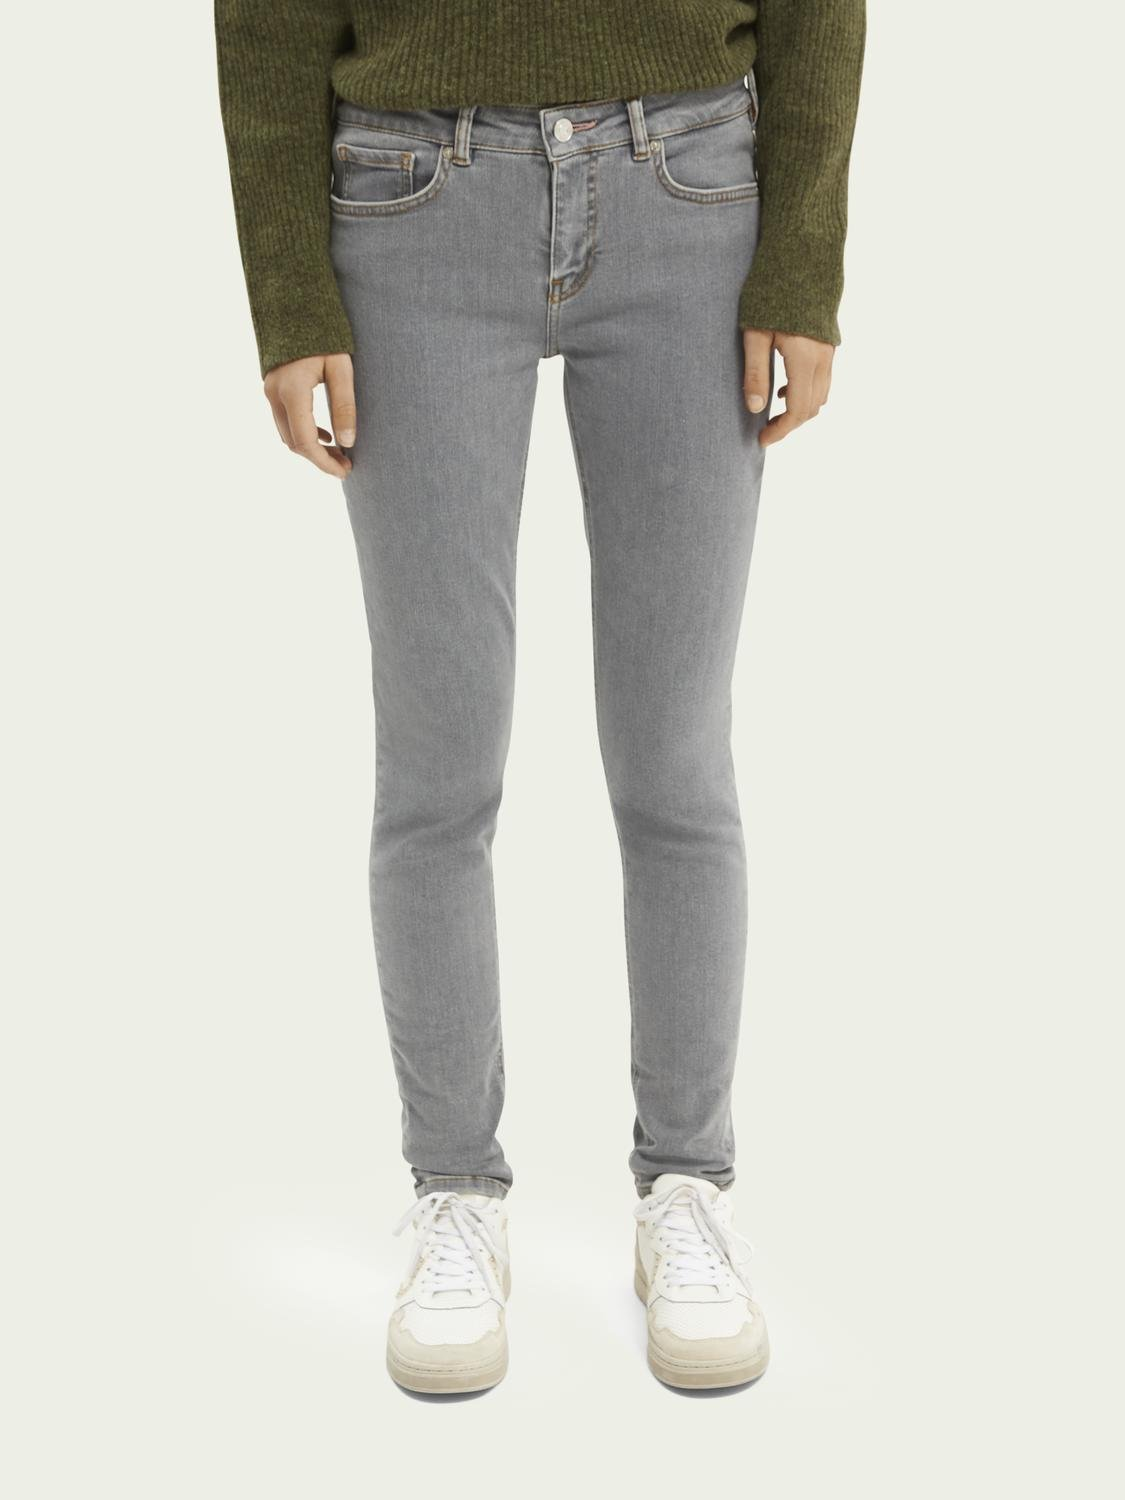 Bohemienne skinny-fit jeans —Nowhere to go